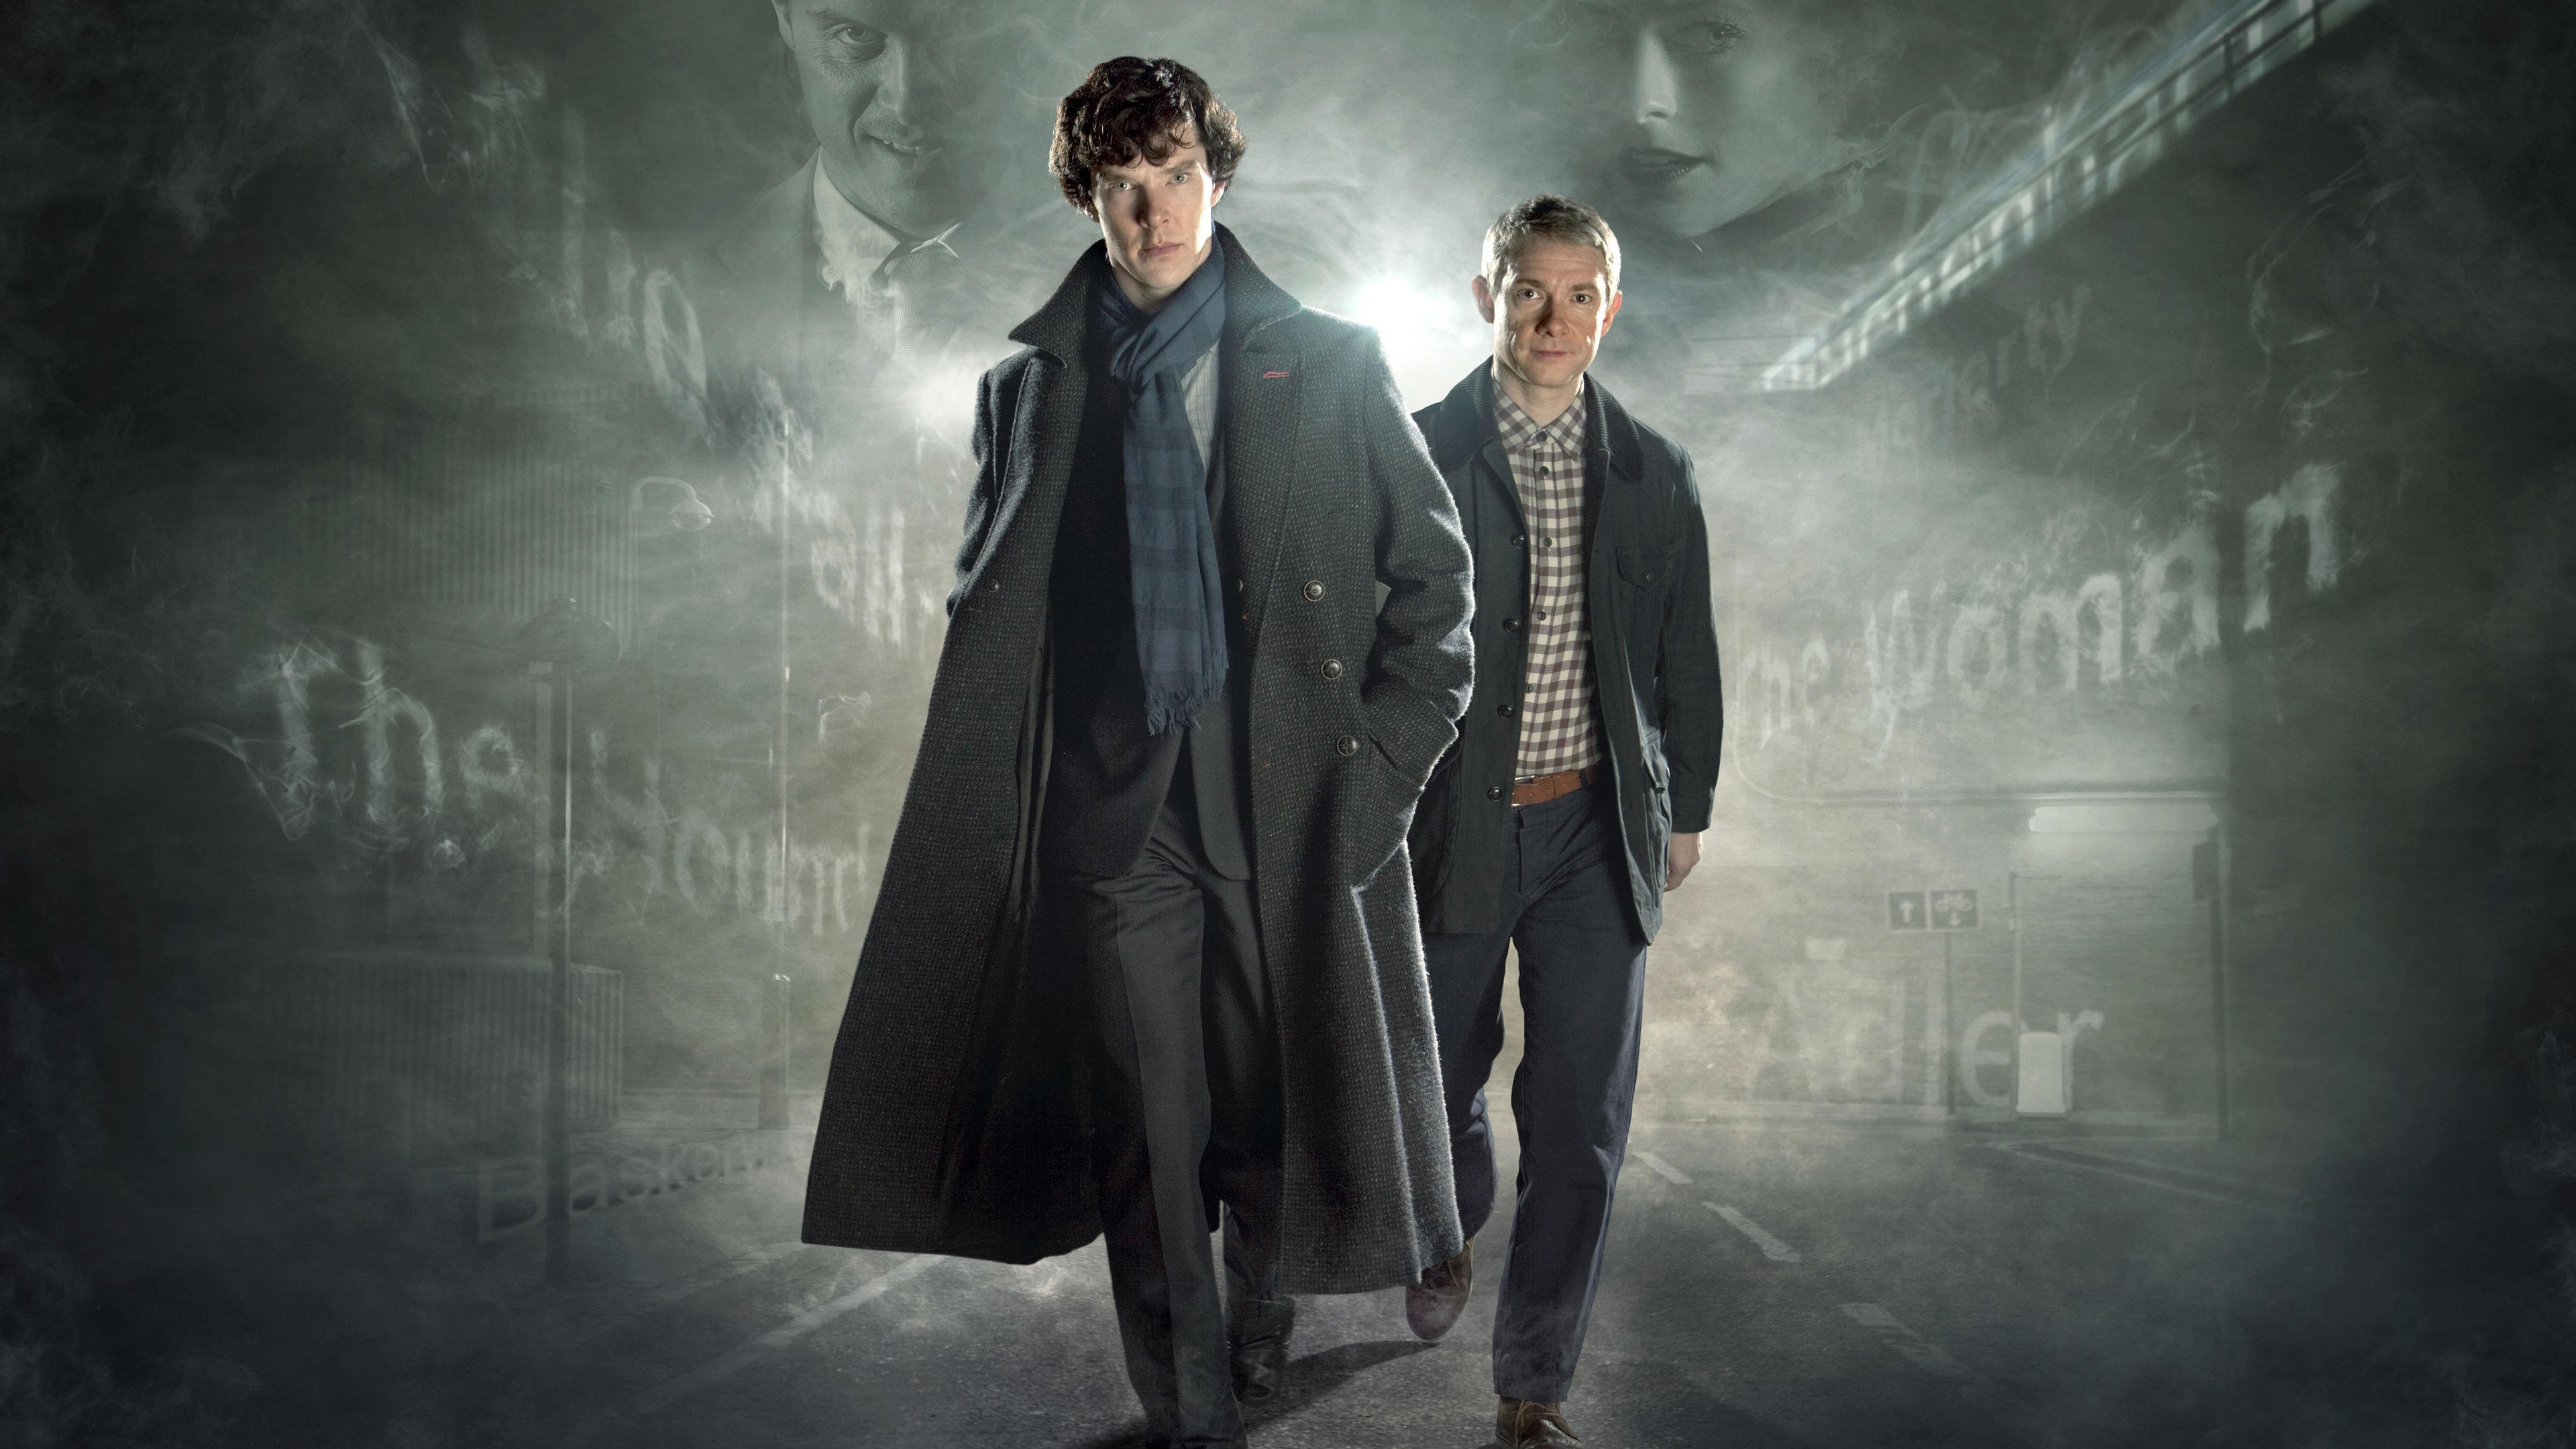 Sherlock 4k Wallpapers For Your Desktop Or Mobile Screen Free And Easy To Download